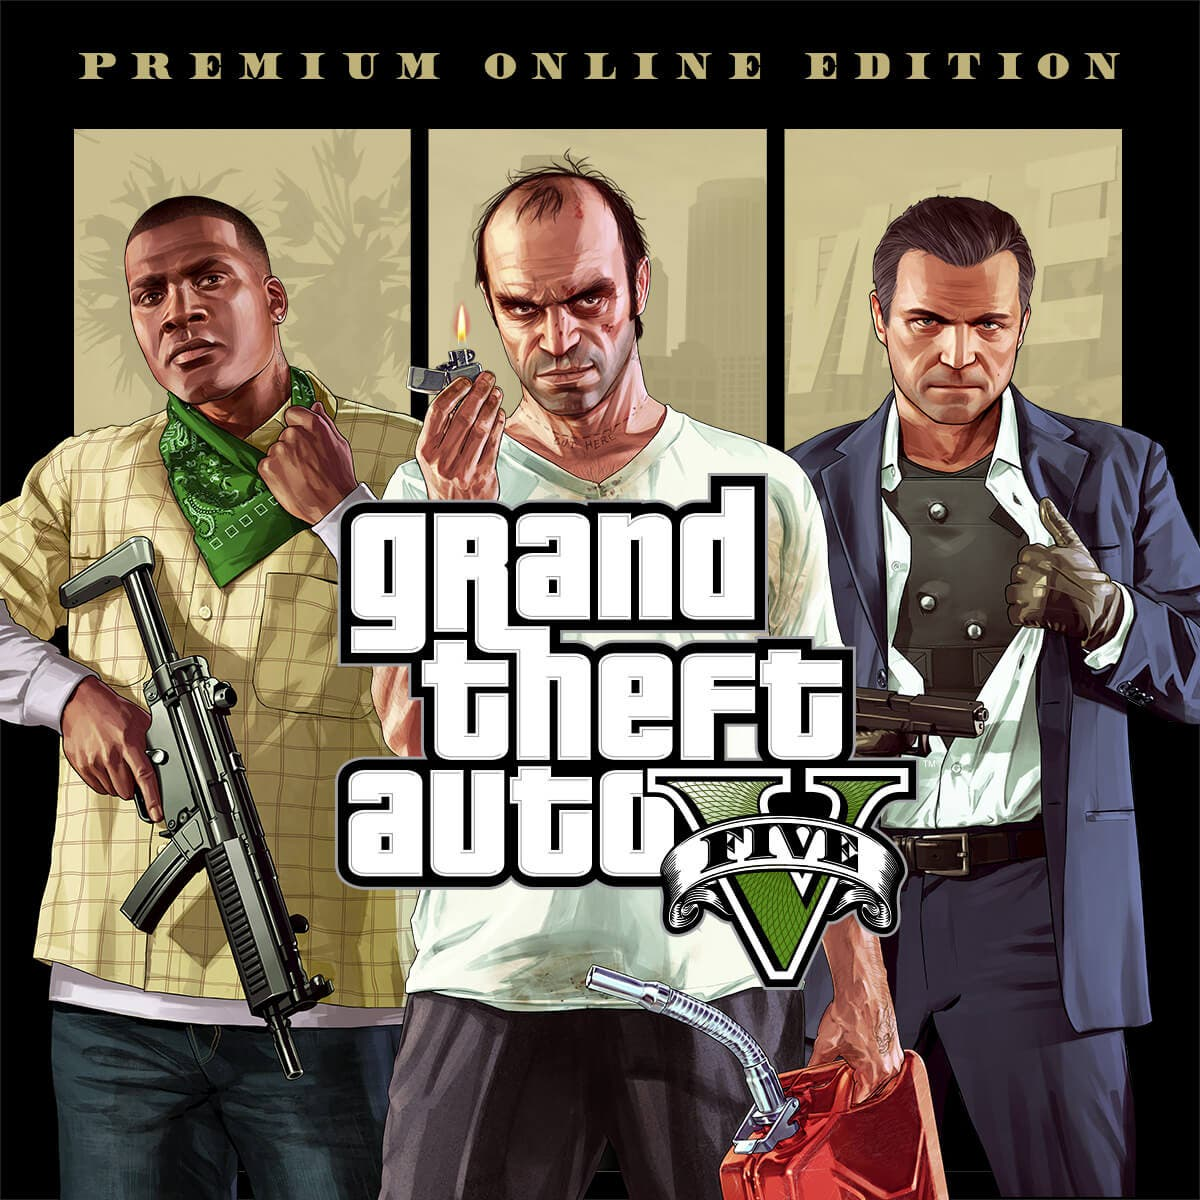 GTA V Premium Online Edition es la edición definitiva del juego exclusiva de GAME 2